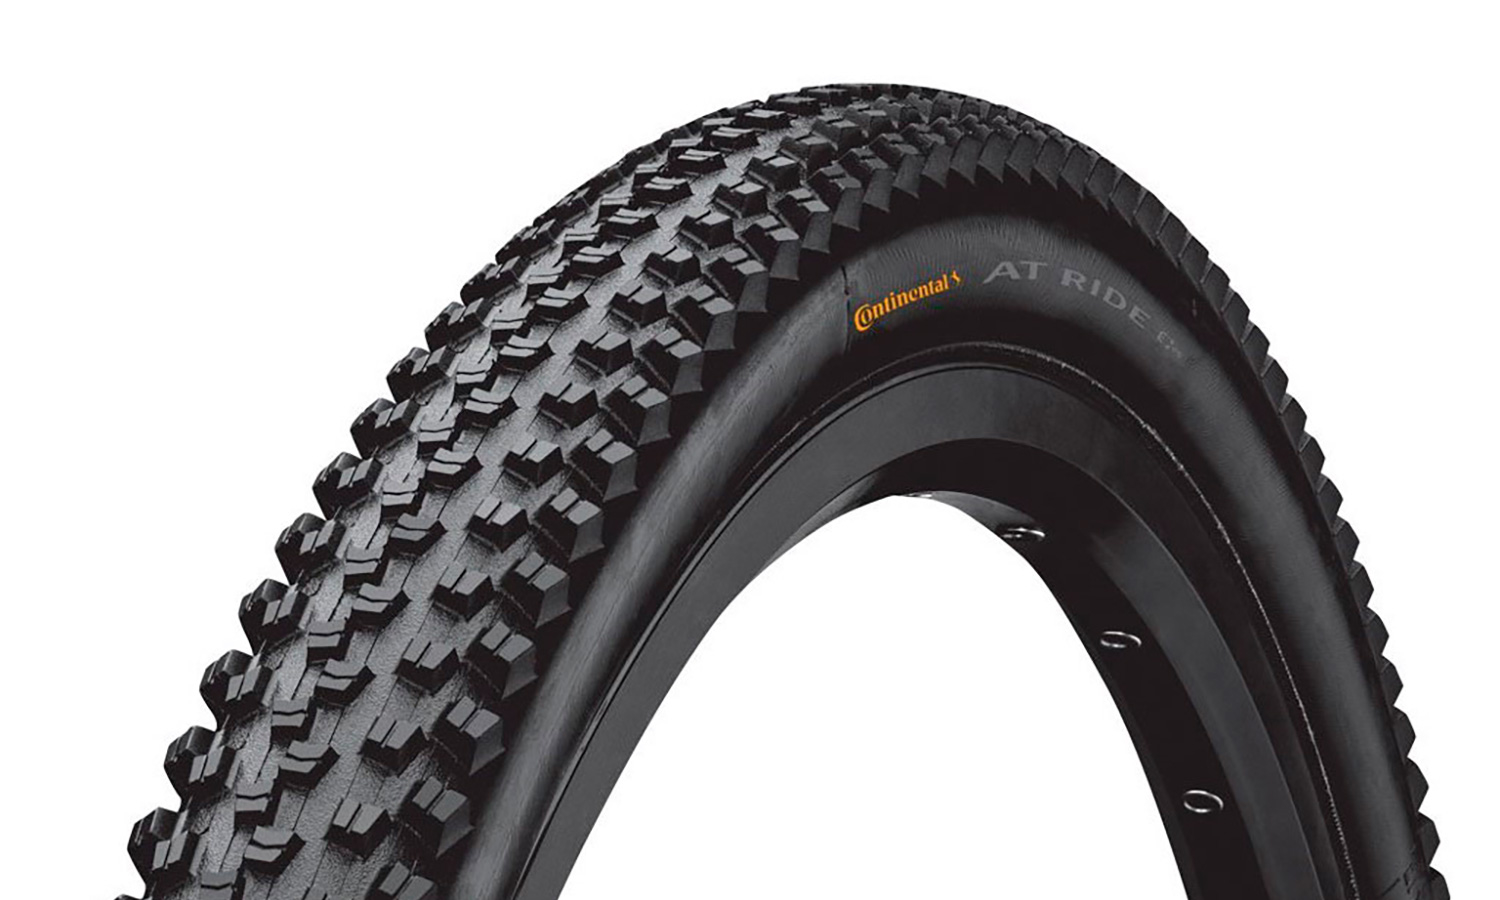 "Покрышка Continental AT RIDE 28""x1.6, Puncture ProTection, Skin Reflex"